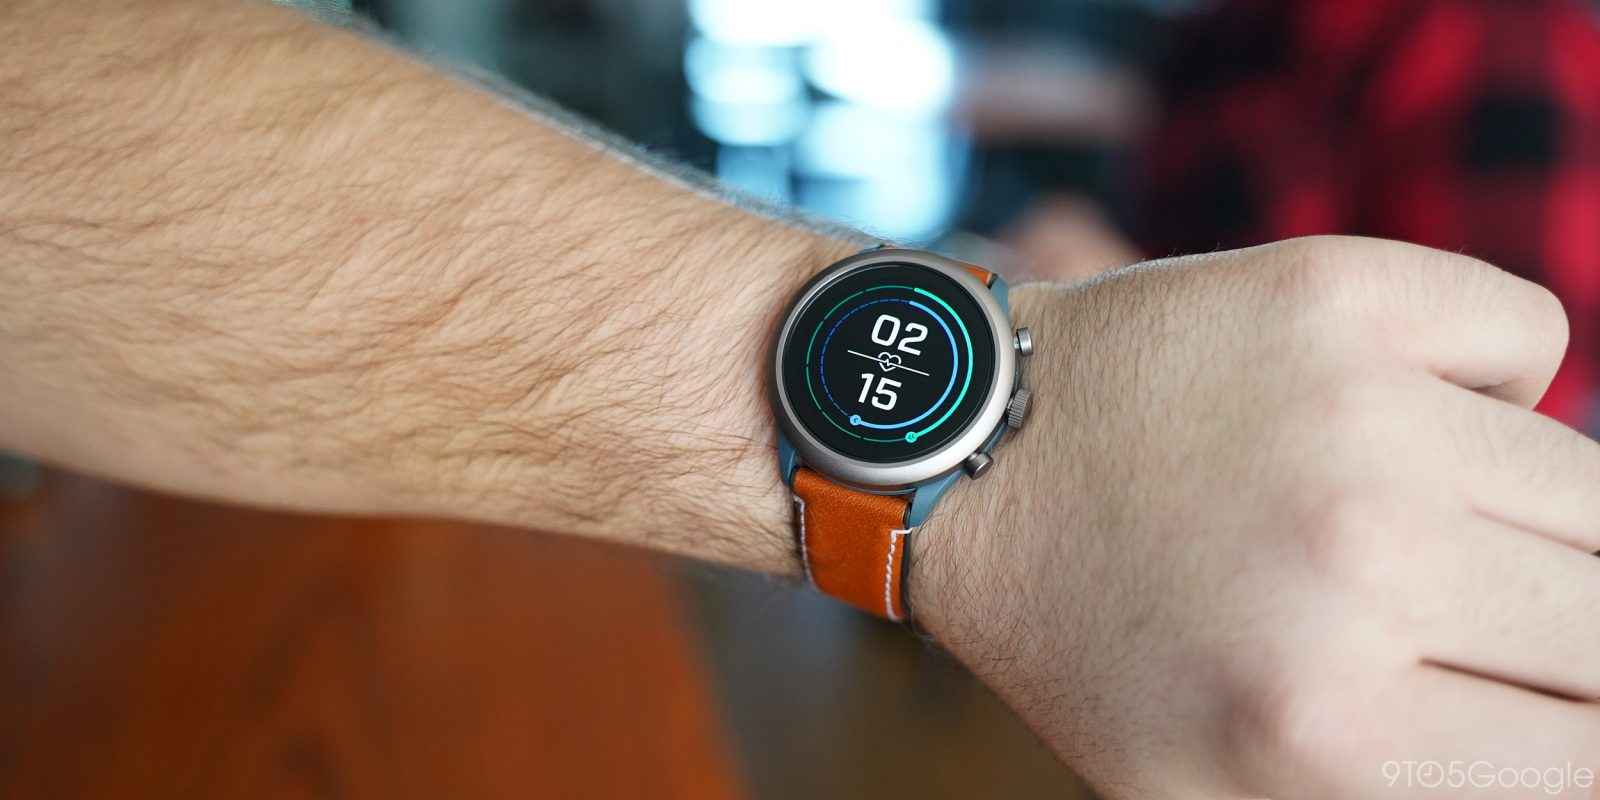 Wear OS' biggest player drops market share in Q1 2019 as Huawei Watch GT makes smashing debut - 9to5Google